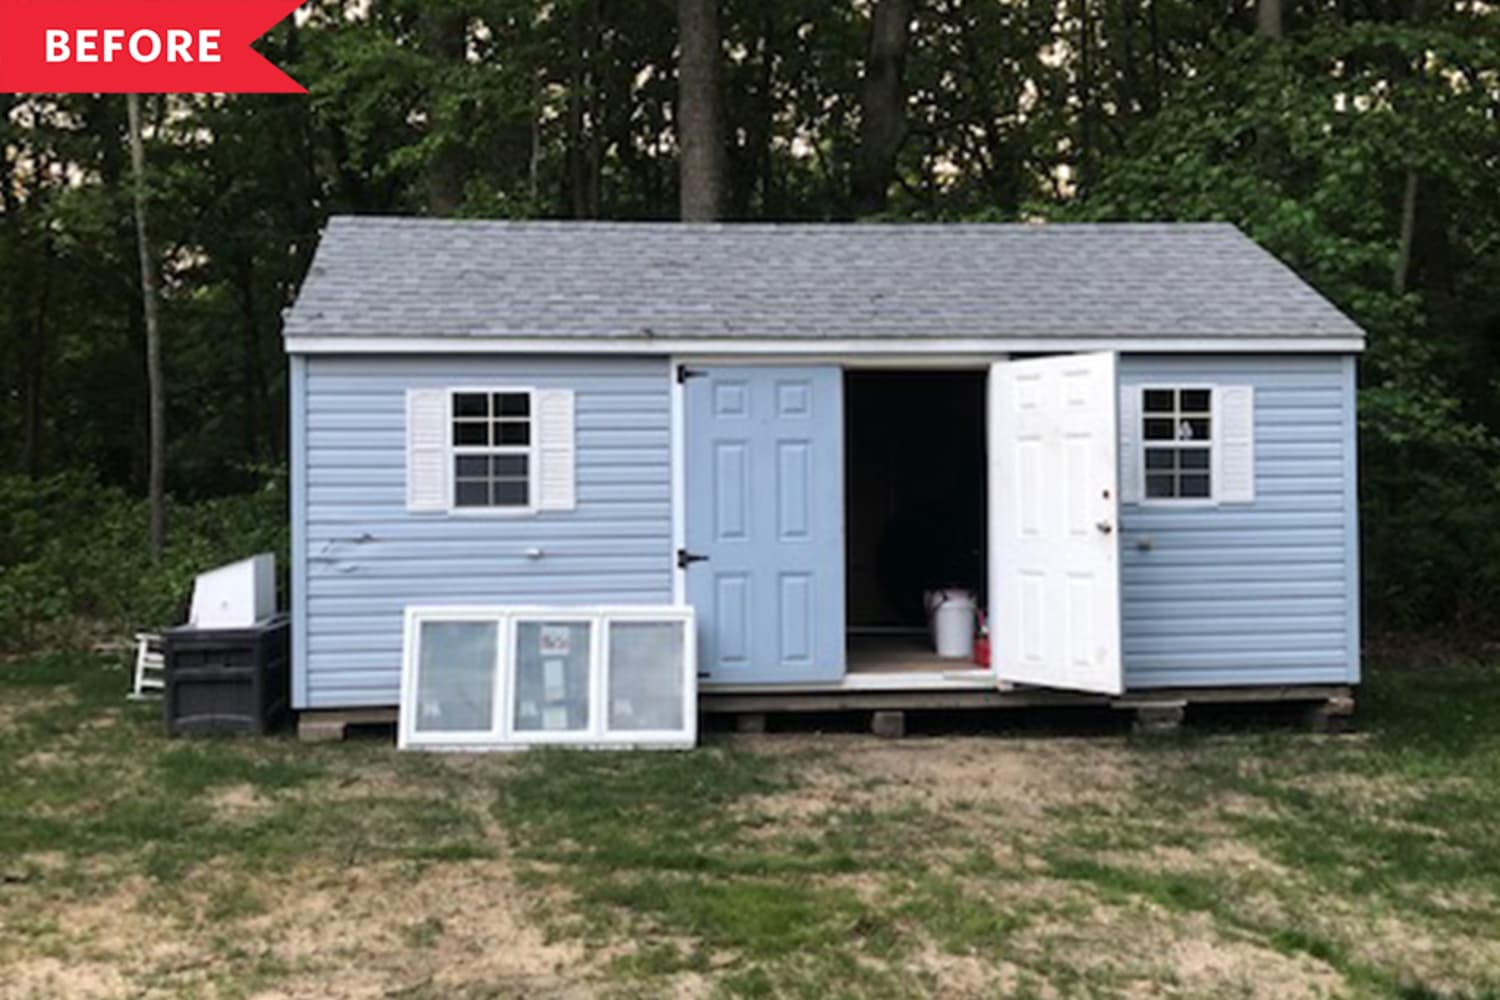 Before and After: An Eyesore Storage Shed Gets a Charming Cottagey Makeover for $250